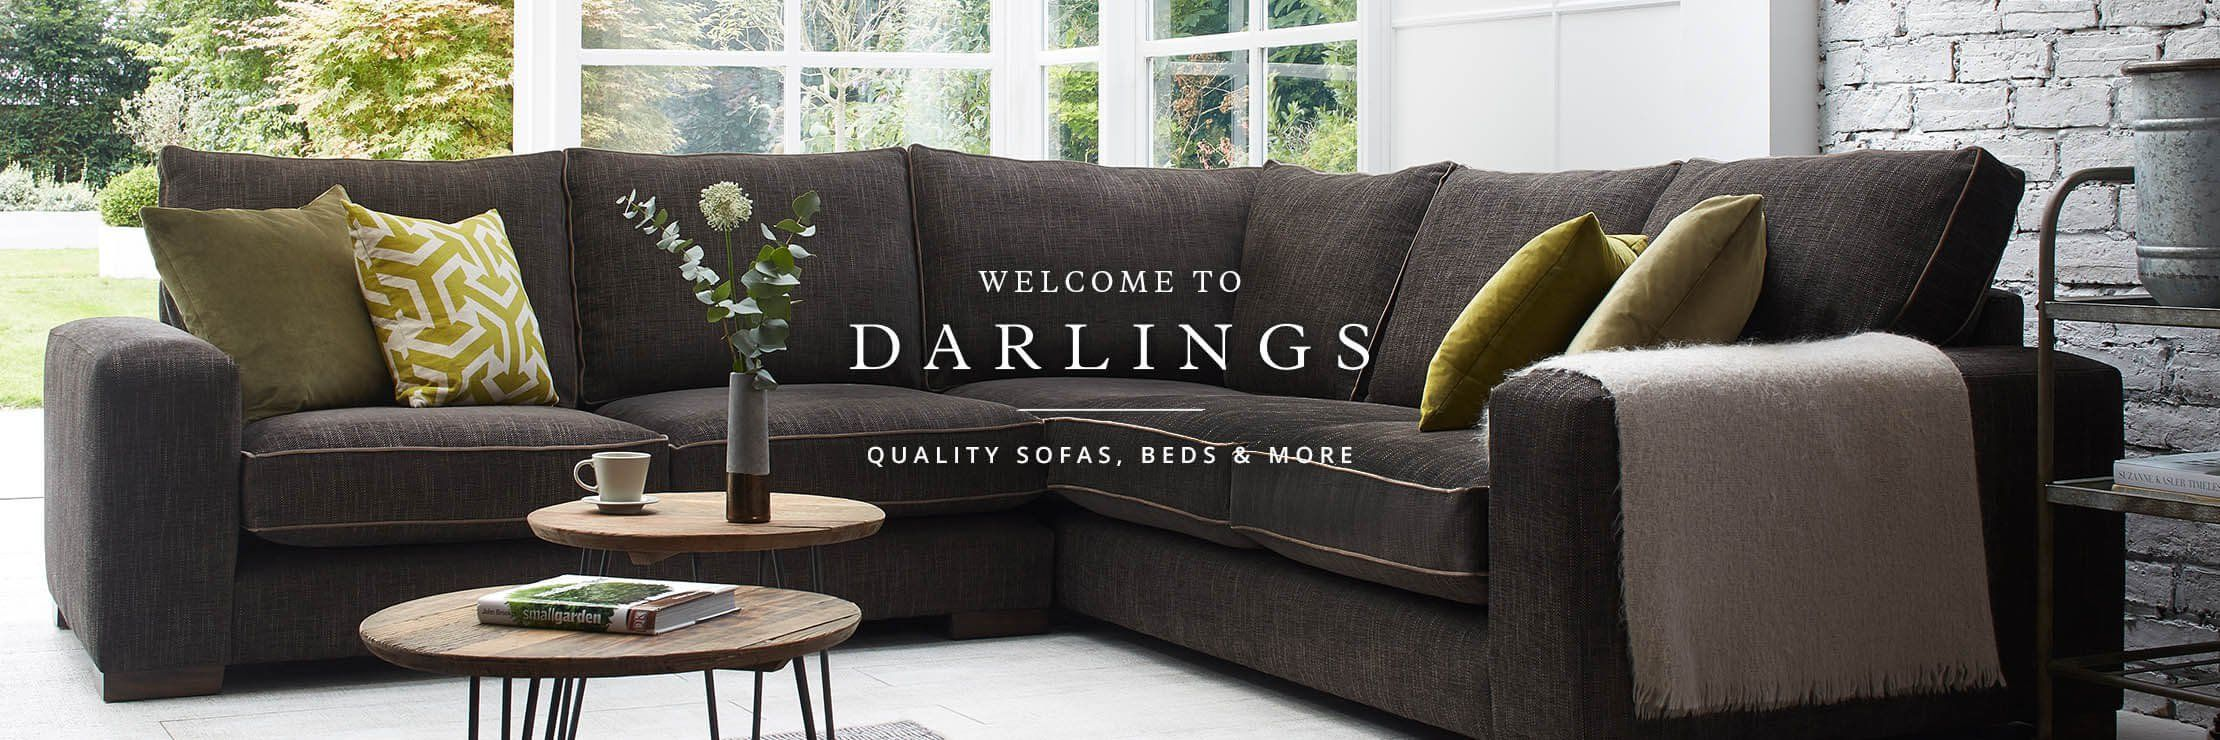 Get Quality Sofas Chairs Beds And Dining Accessories That Can Effortlessly Match Your Style Http Www Voucherish Co Quality Sofas Home Dining Accessories